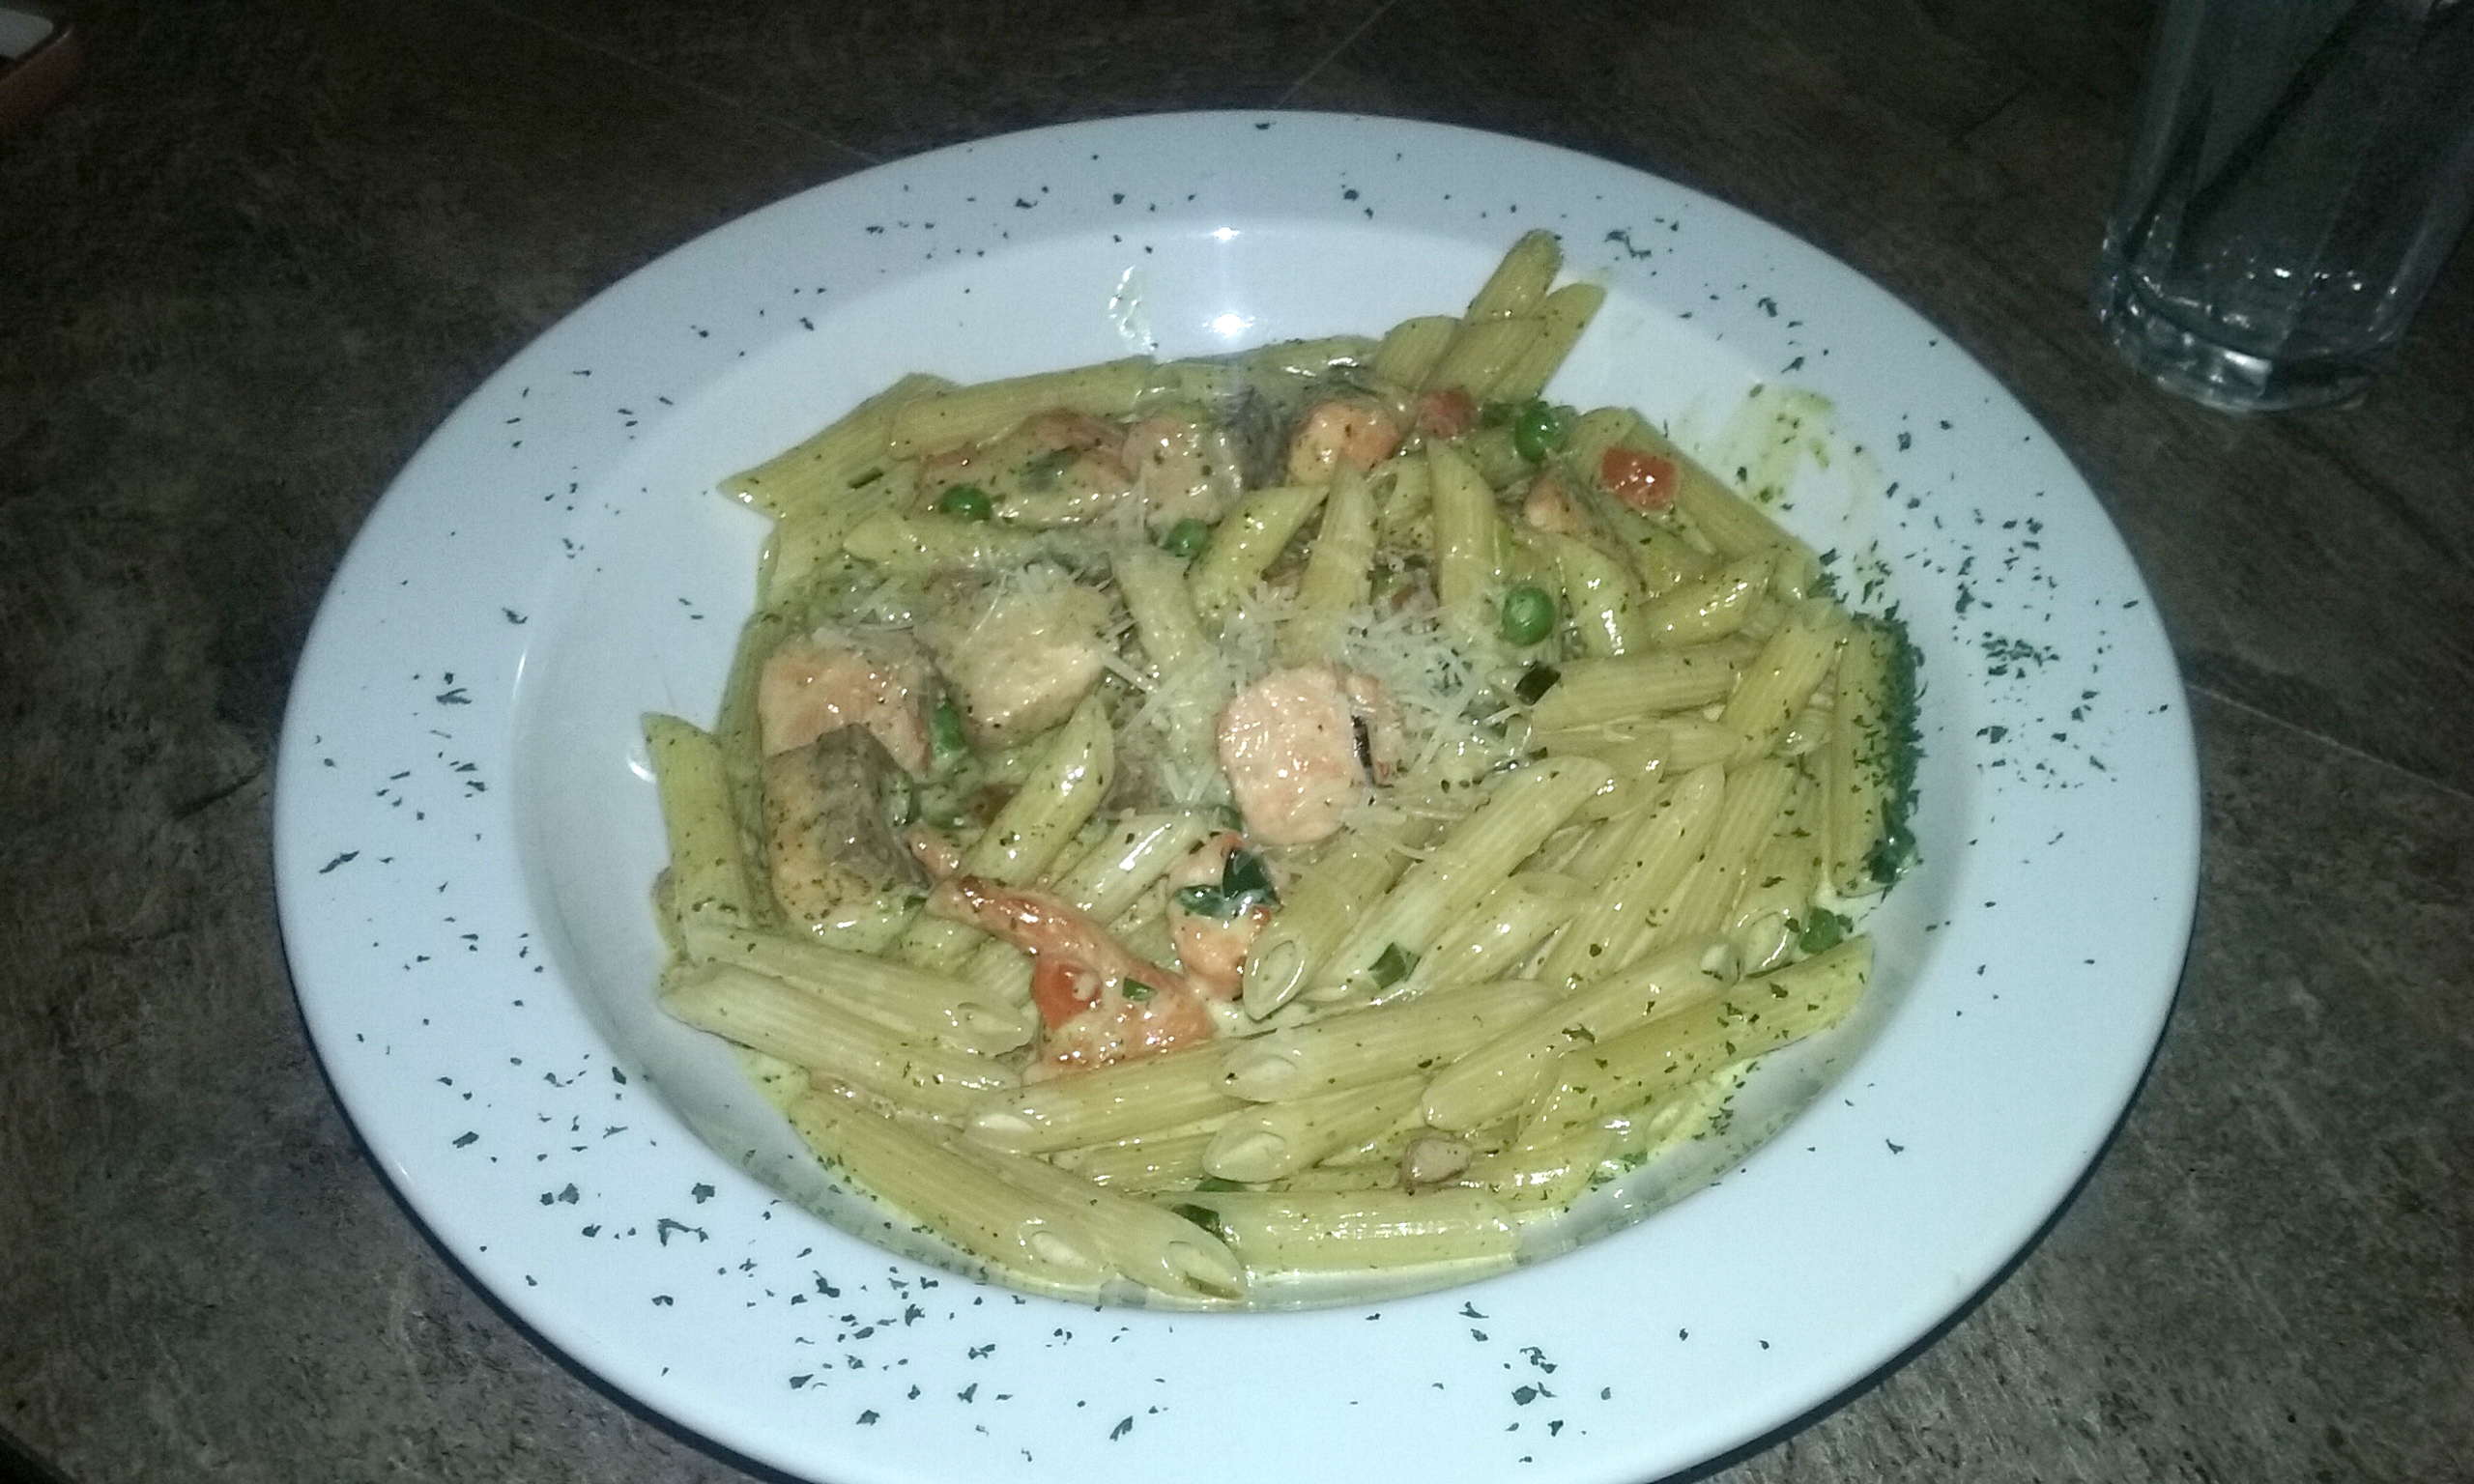 Salmon pesto at Ralph Spice